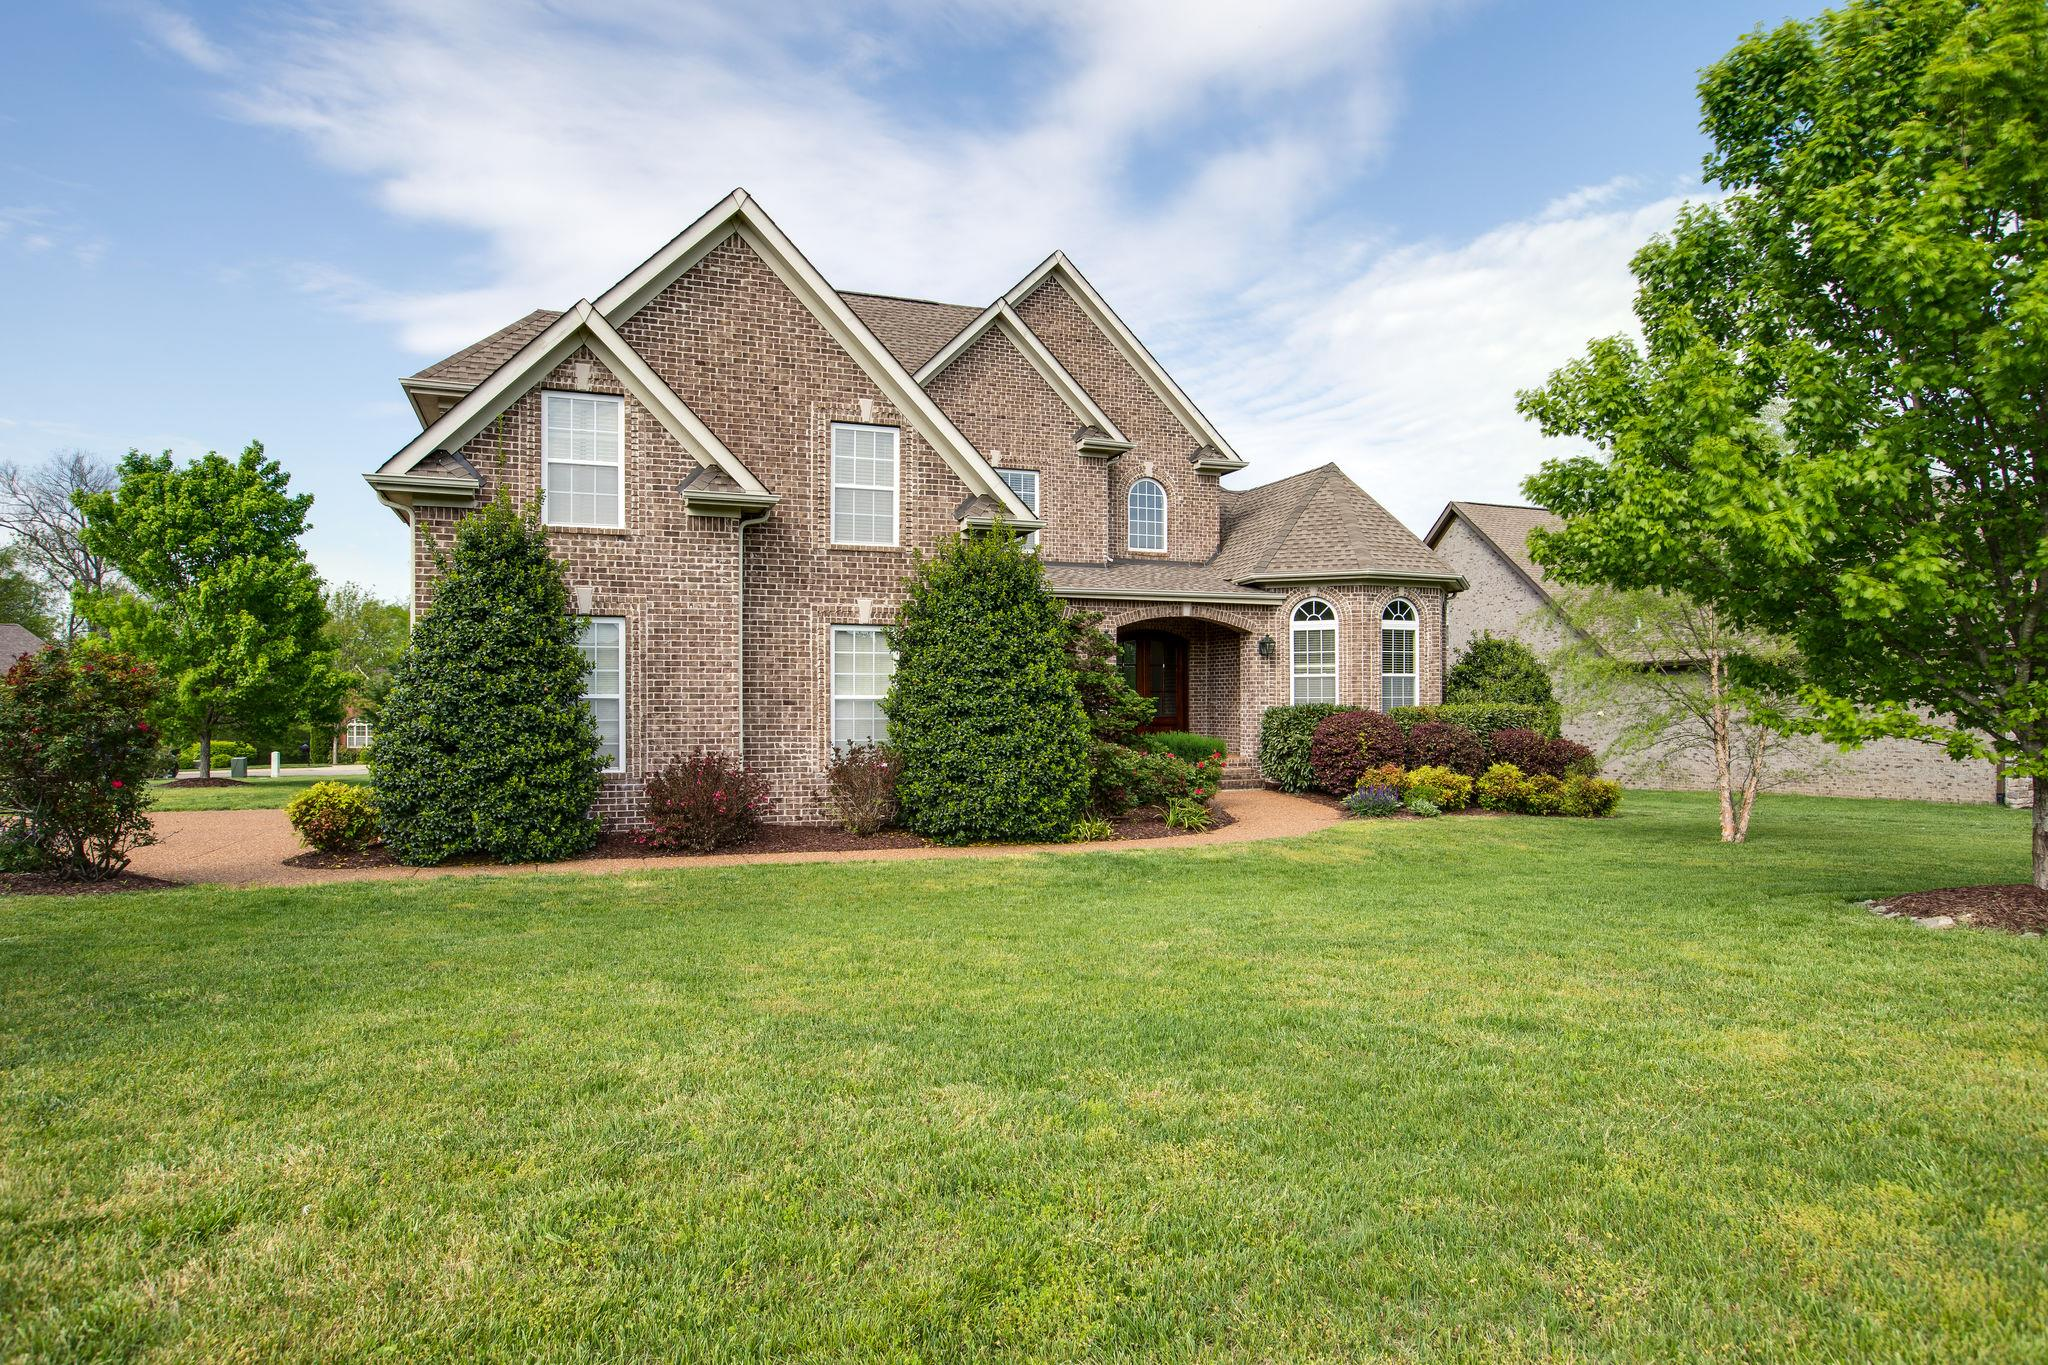 4030 Miles Johnson Pkwy, Spring Hill, TN 37174 - Spring Hill, TN real estate listing